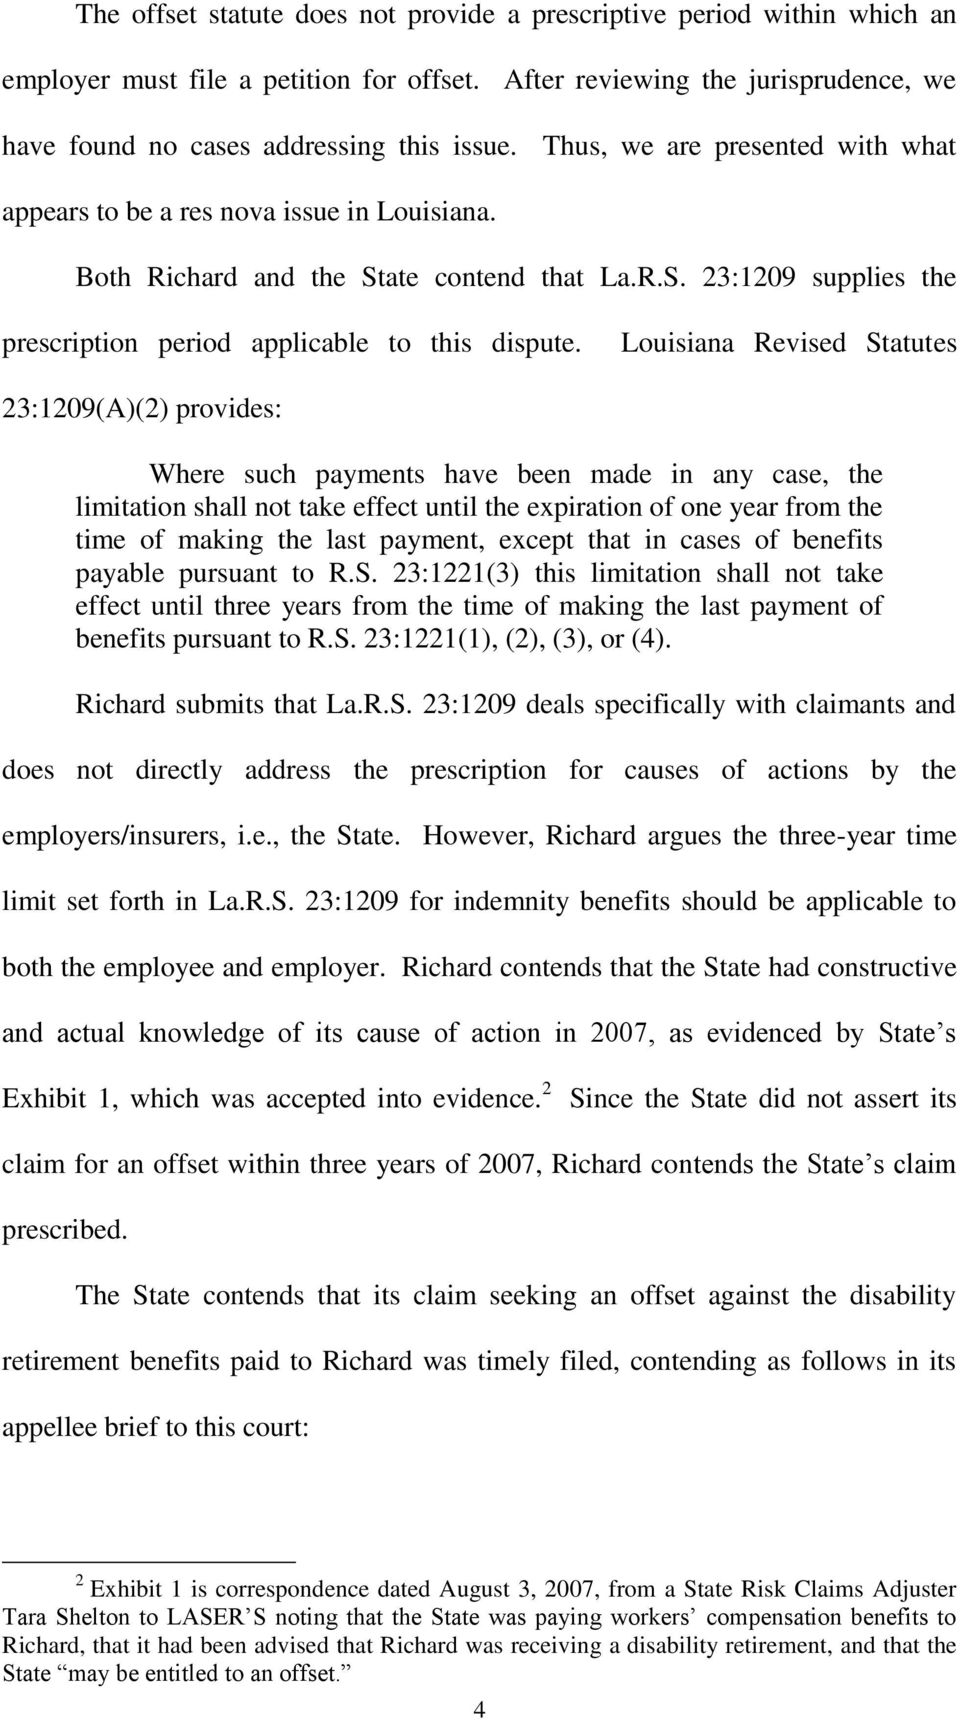 Louisiana Revised Statutes 23:1209(A)(2) provides: Where such payments have been made in any case, the limitation shall not take effect until the expiration of one year from the time of making the